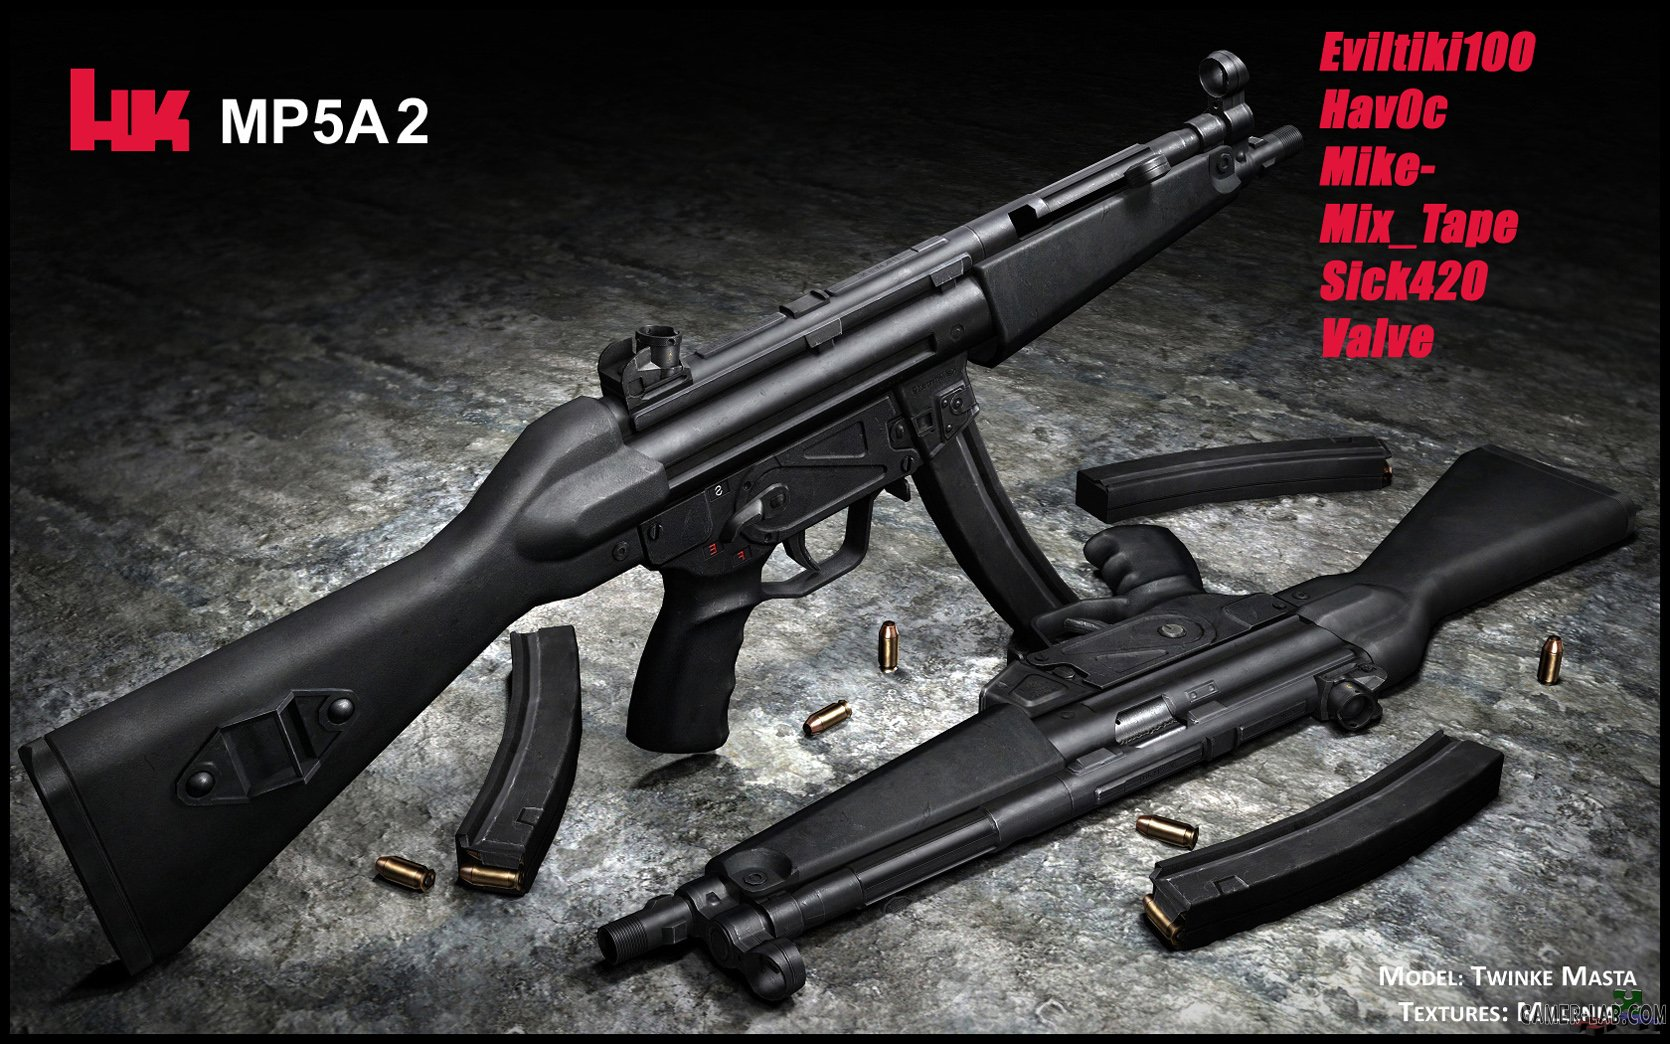 Twinke_and_Millenia_H_K_MP5A2